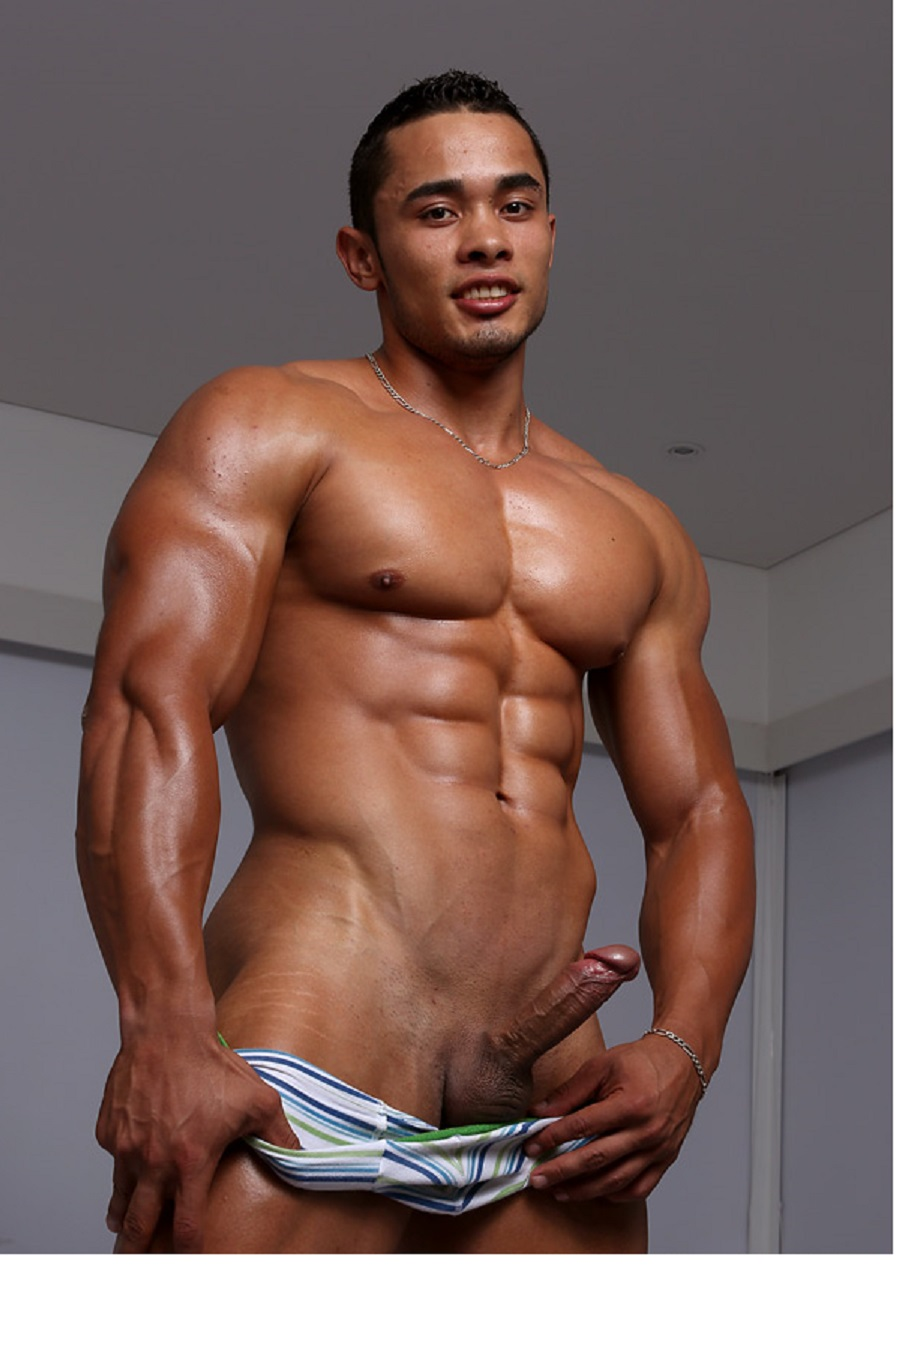 Asian american men nude, archives of s girl galleries